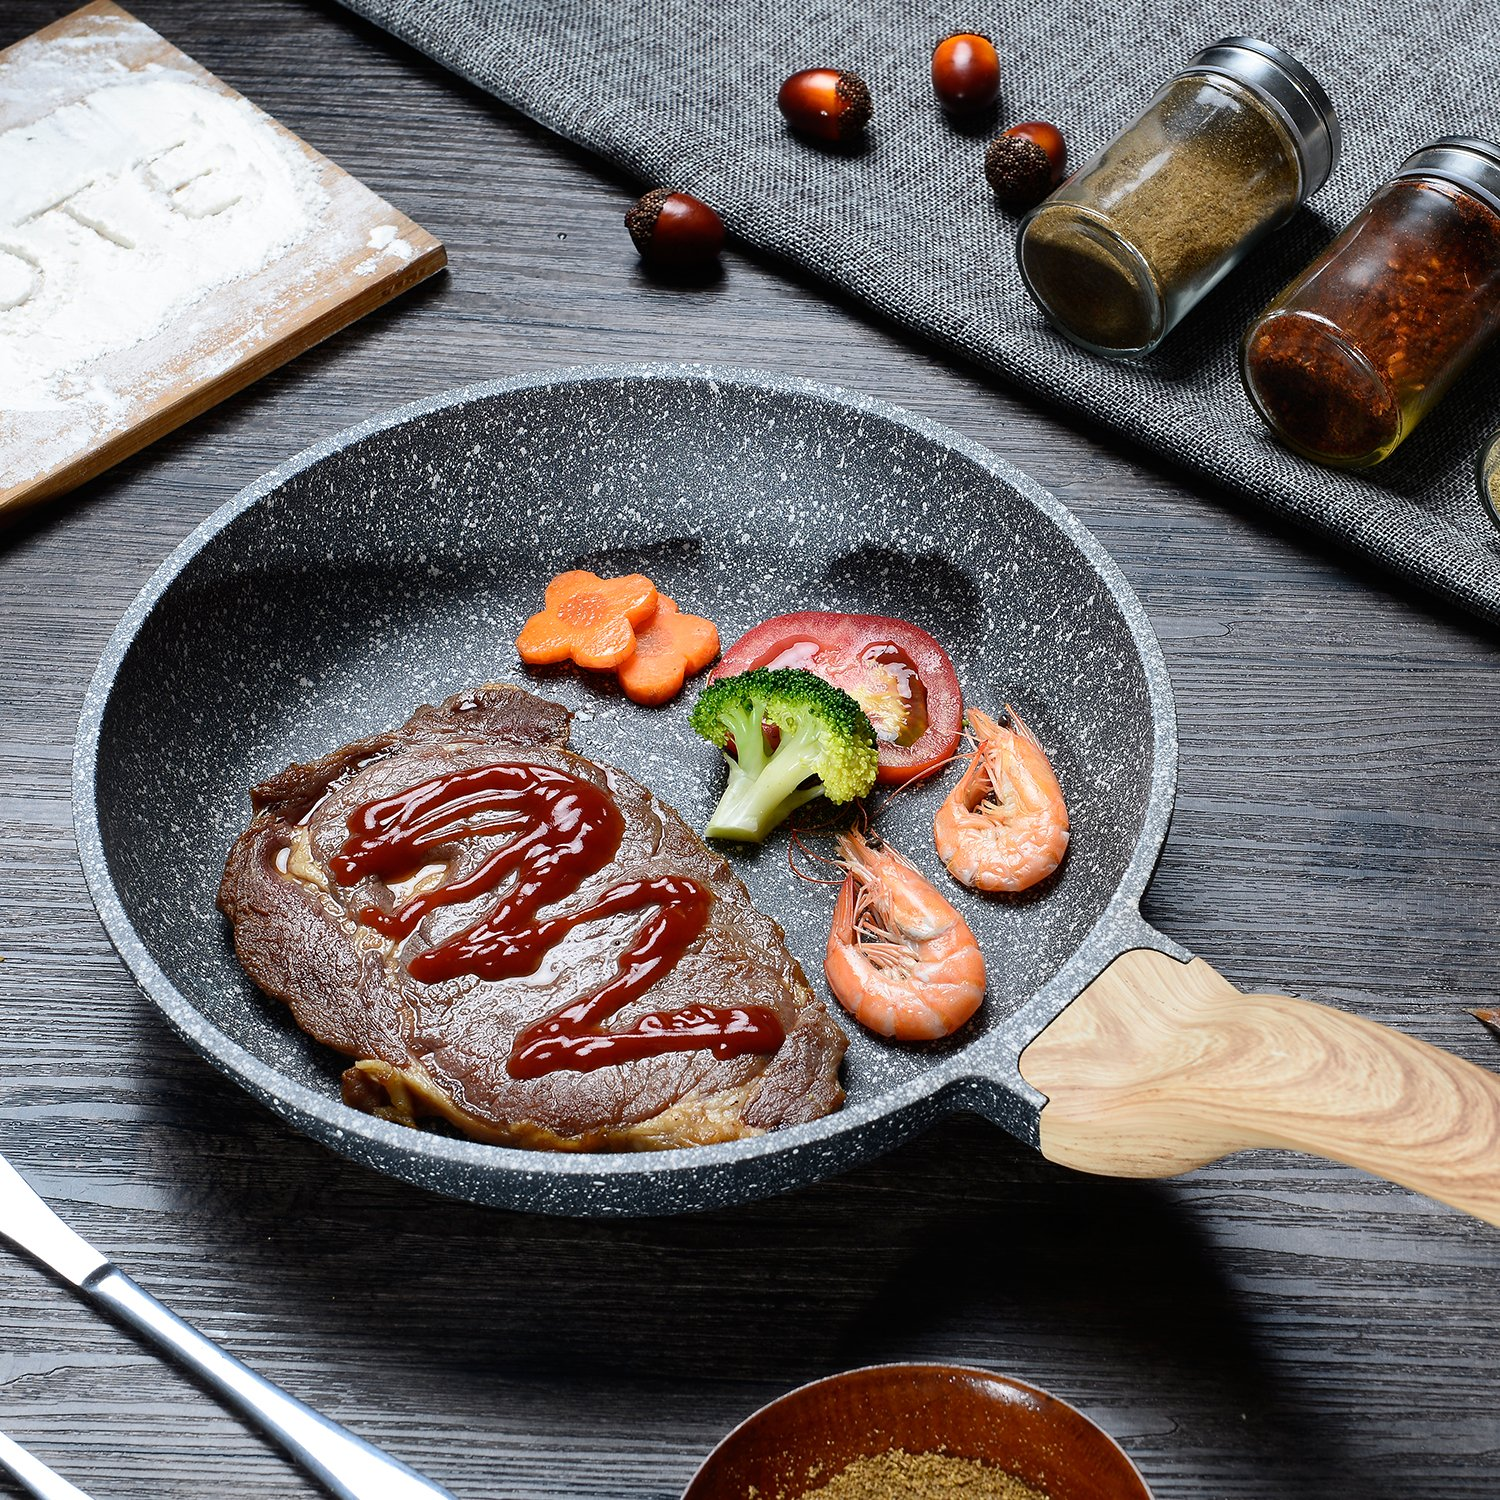 Carote 8 Inch Frying Pan PFOA Free Stone-Derived Non-Stick Coating From Switzerland, With Wood Effect Handle,Suitable For All Stove Including Induction